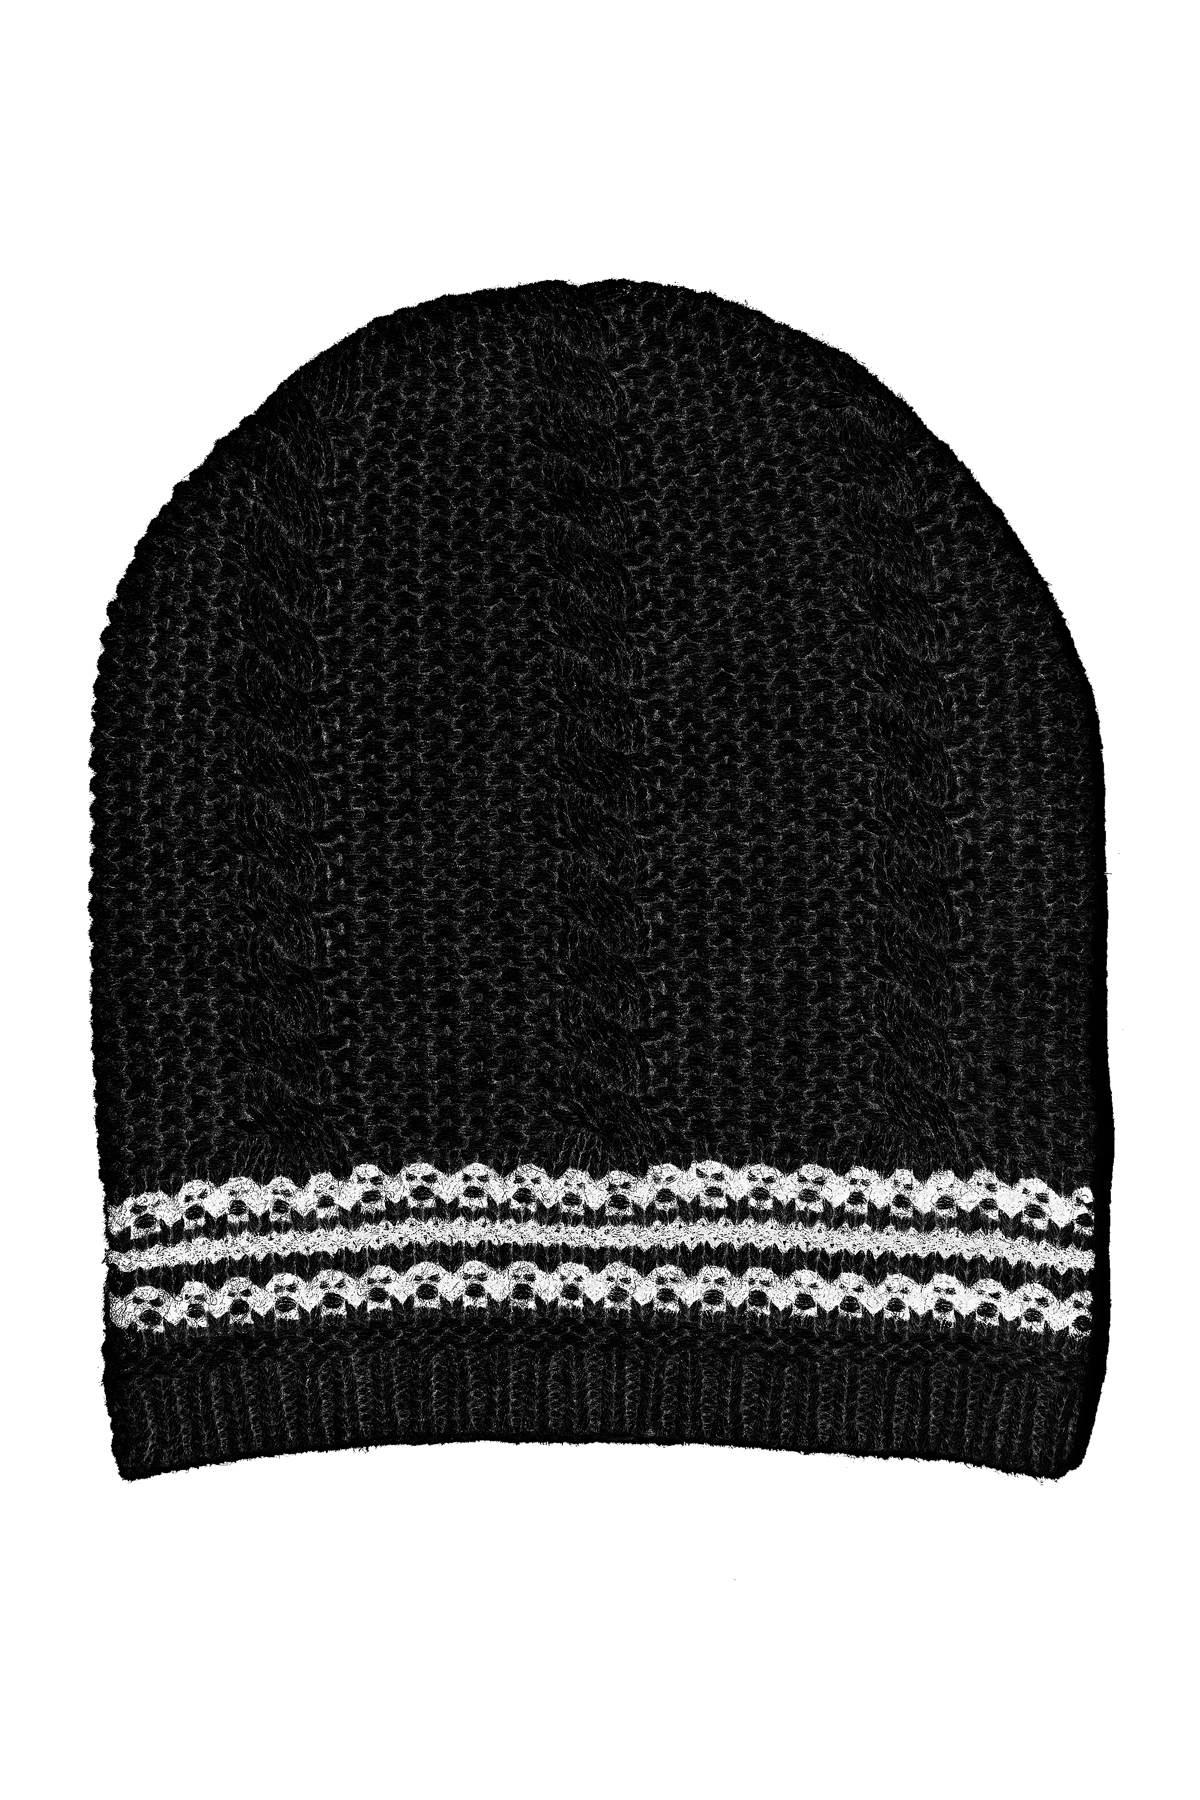 AMANDA WAKELEY BLACK CABLE KNIT HAT